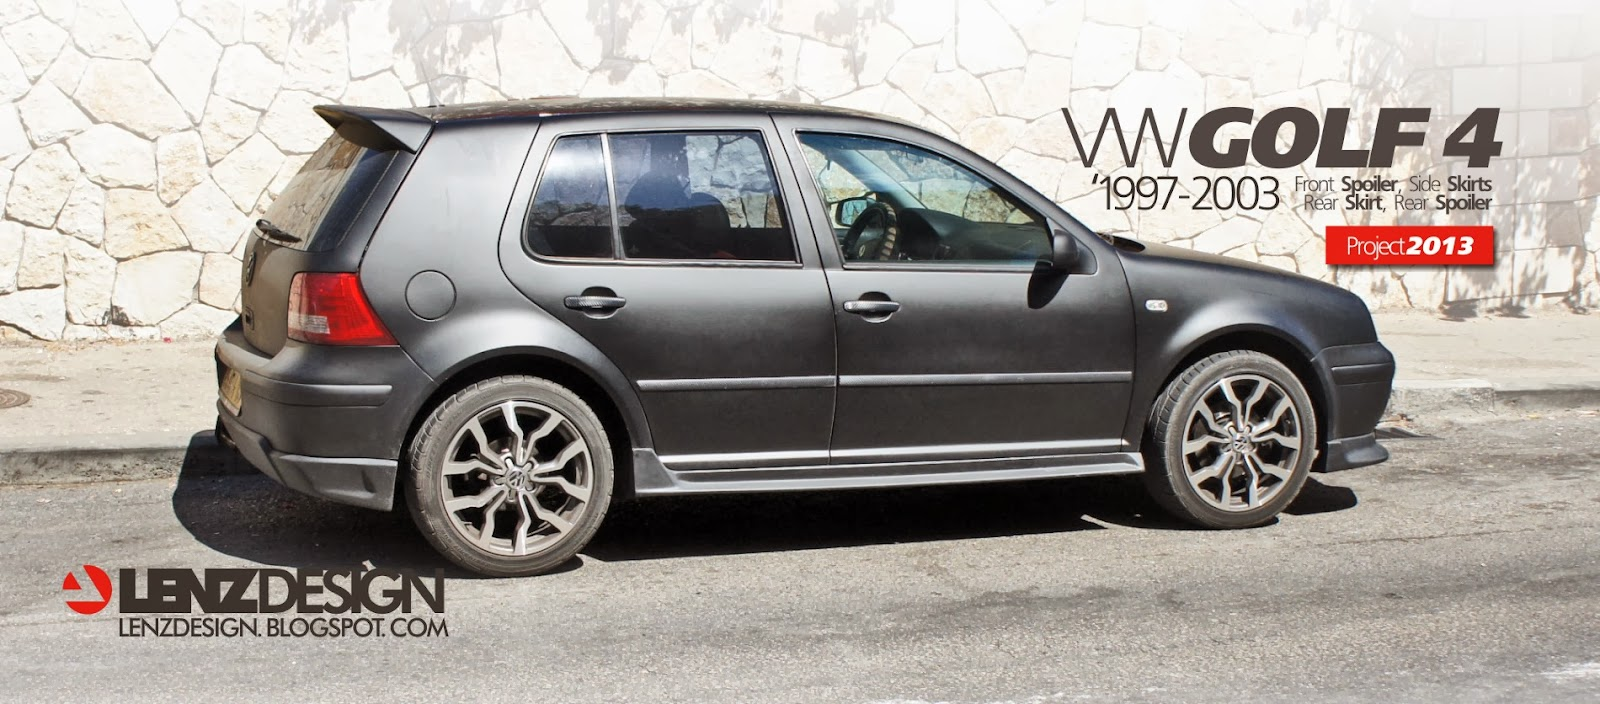 vw golf 4 tuning lenzdesign. Black Bedroom Furniture Sets. Home Design Ideas